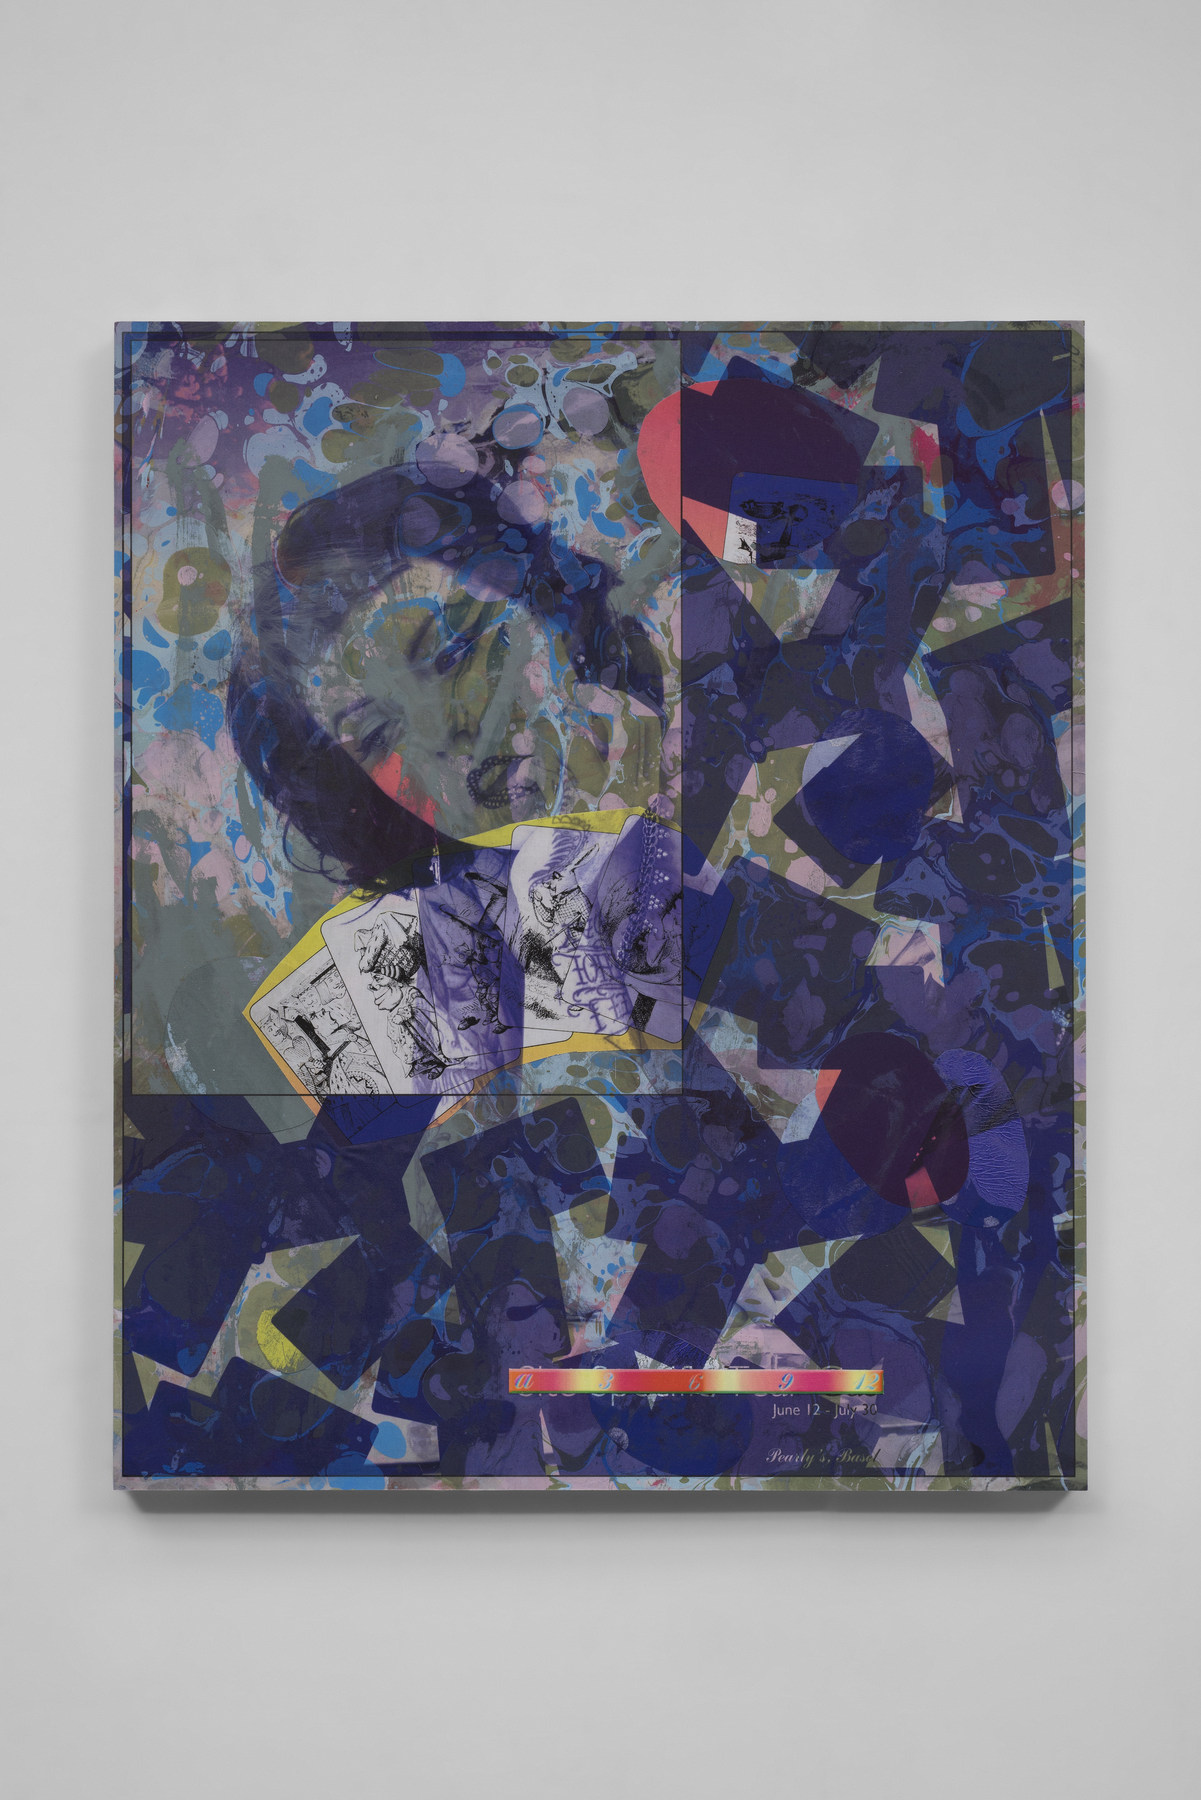 22. Mull_Theoretical Children (Alanna Pearl), 2015_K3 ink, ultra-violet ink and acrylic on cotton mounted on honeycomb aluminum_26x21 in